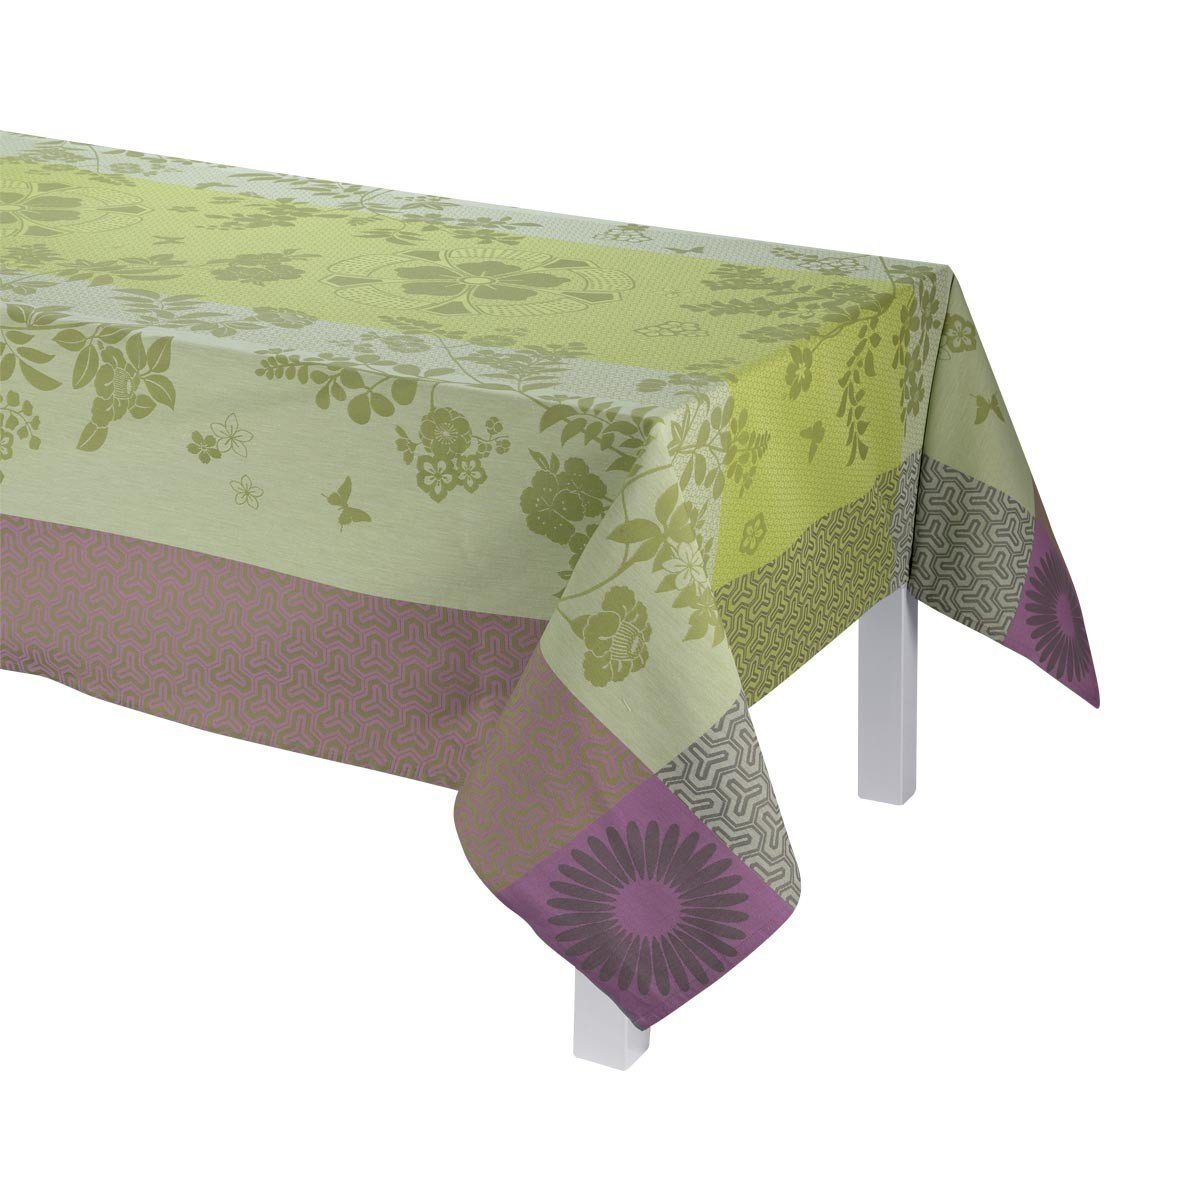 Asia Mood Table Linen By Le Jacquard Francais Table Linens Home